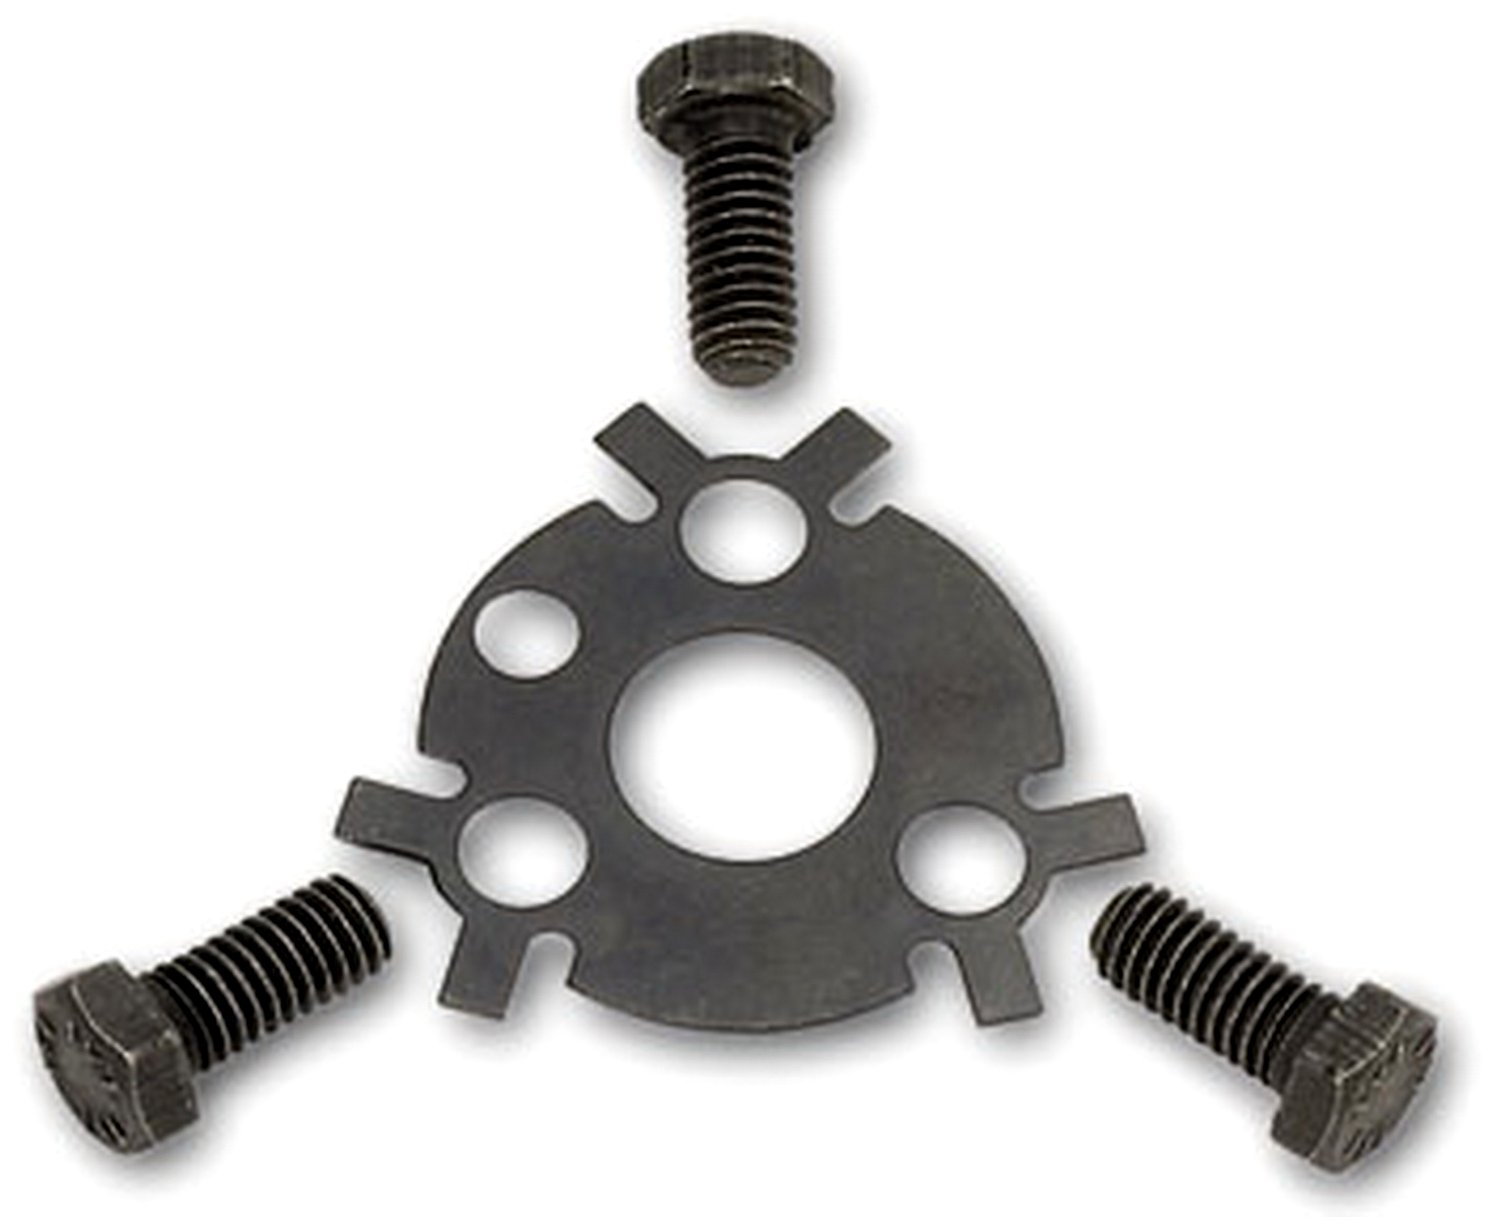 Moroso 60464 Cam Gear Tool with Retainer